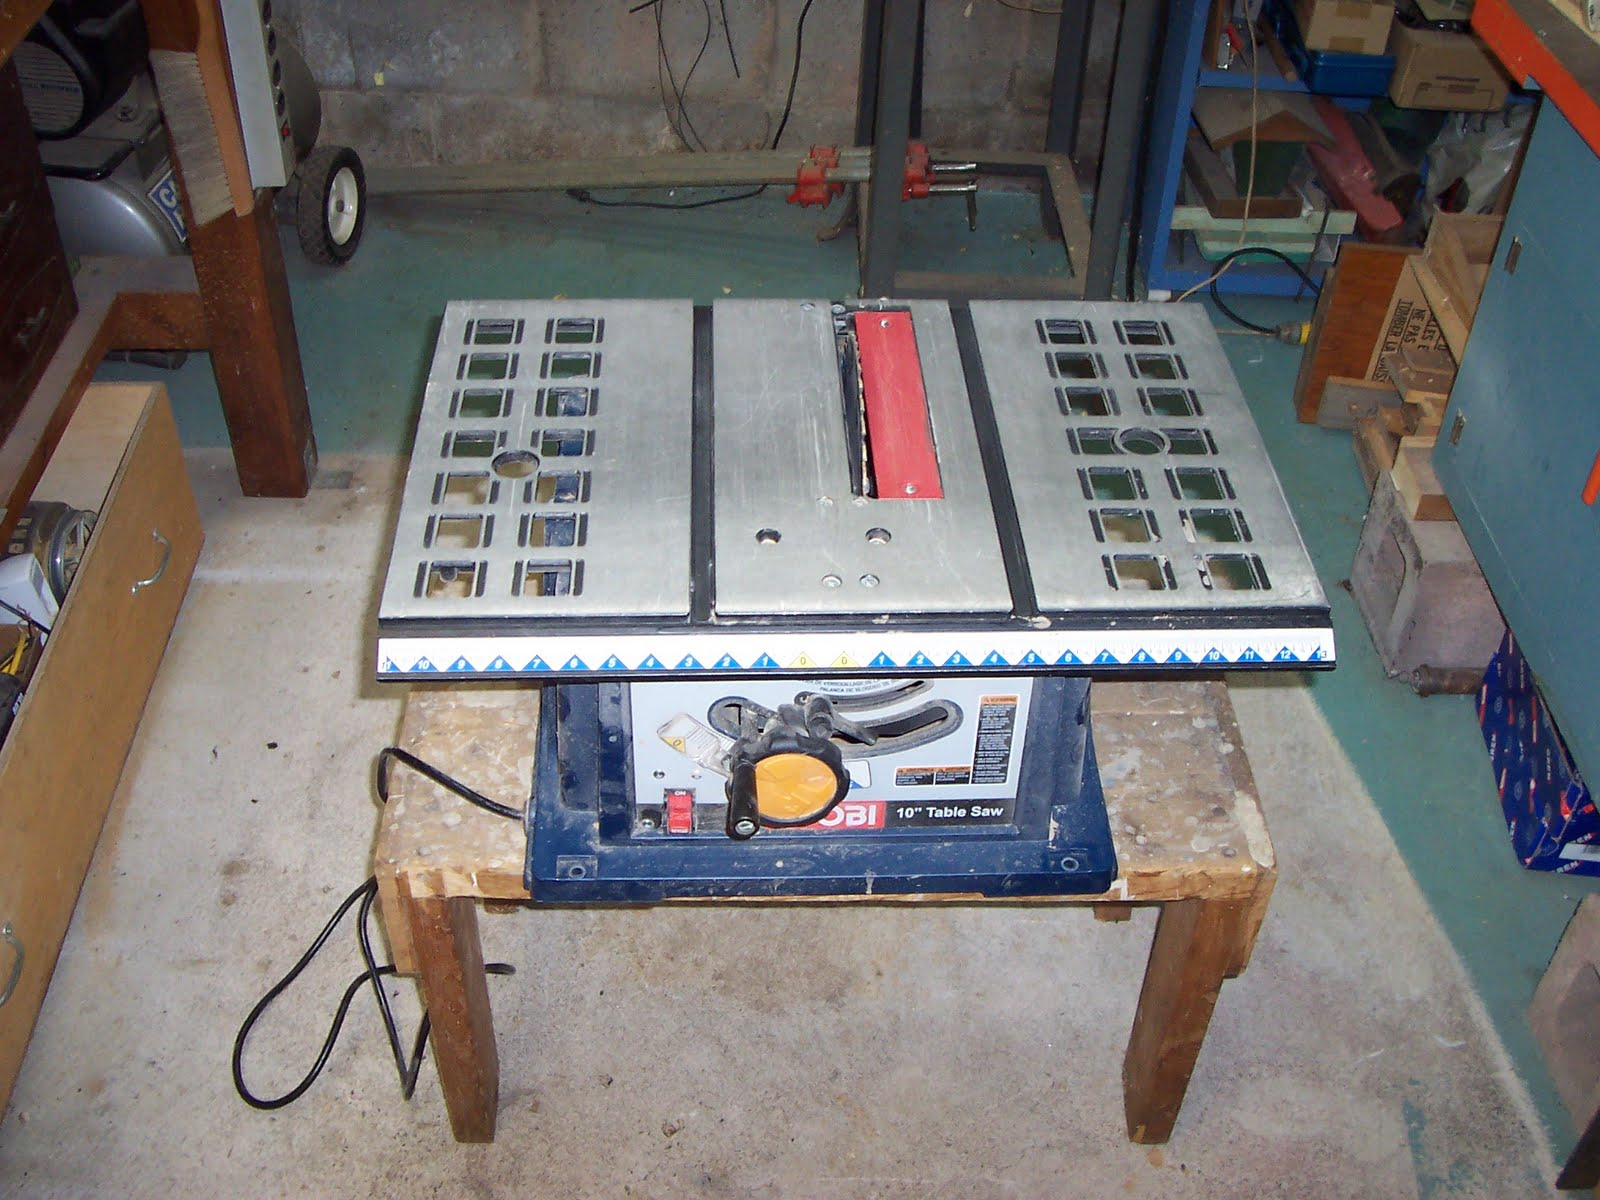 Rouge river workshop ryobi 10 table saw bts12s overhaul ryobi 10 table saw bts12s overhaul keyboard keysfo Images